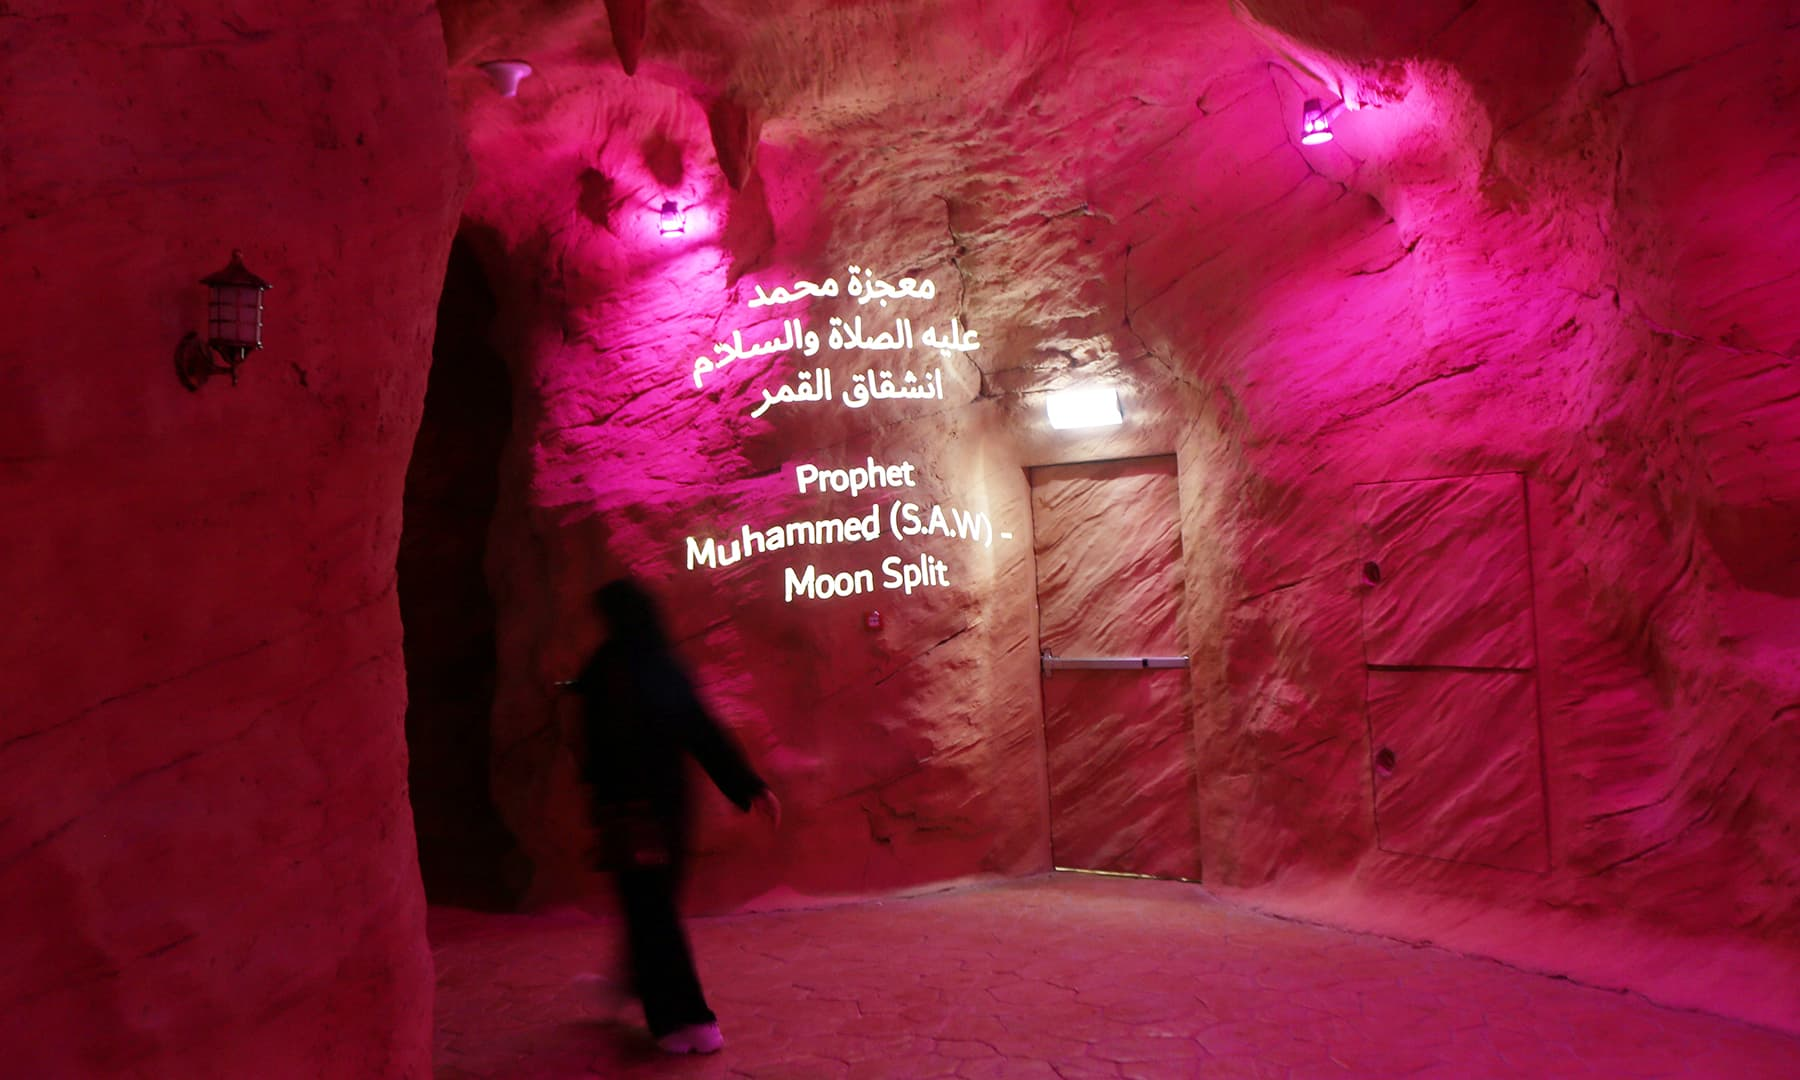 A tourist is seen exploring the Cave of Miracles, part of Dubai's Quranic Park. — Reuters